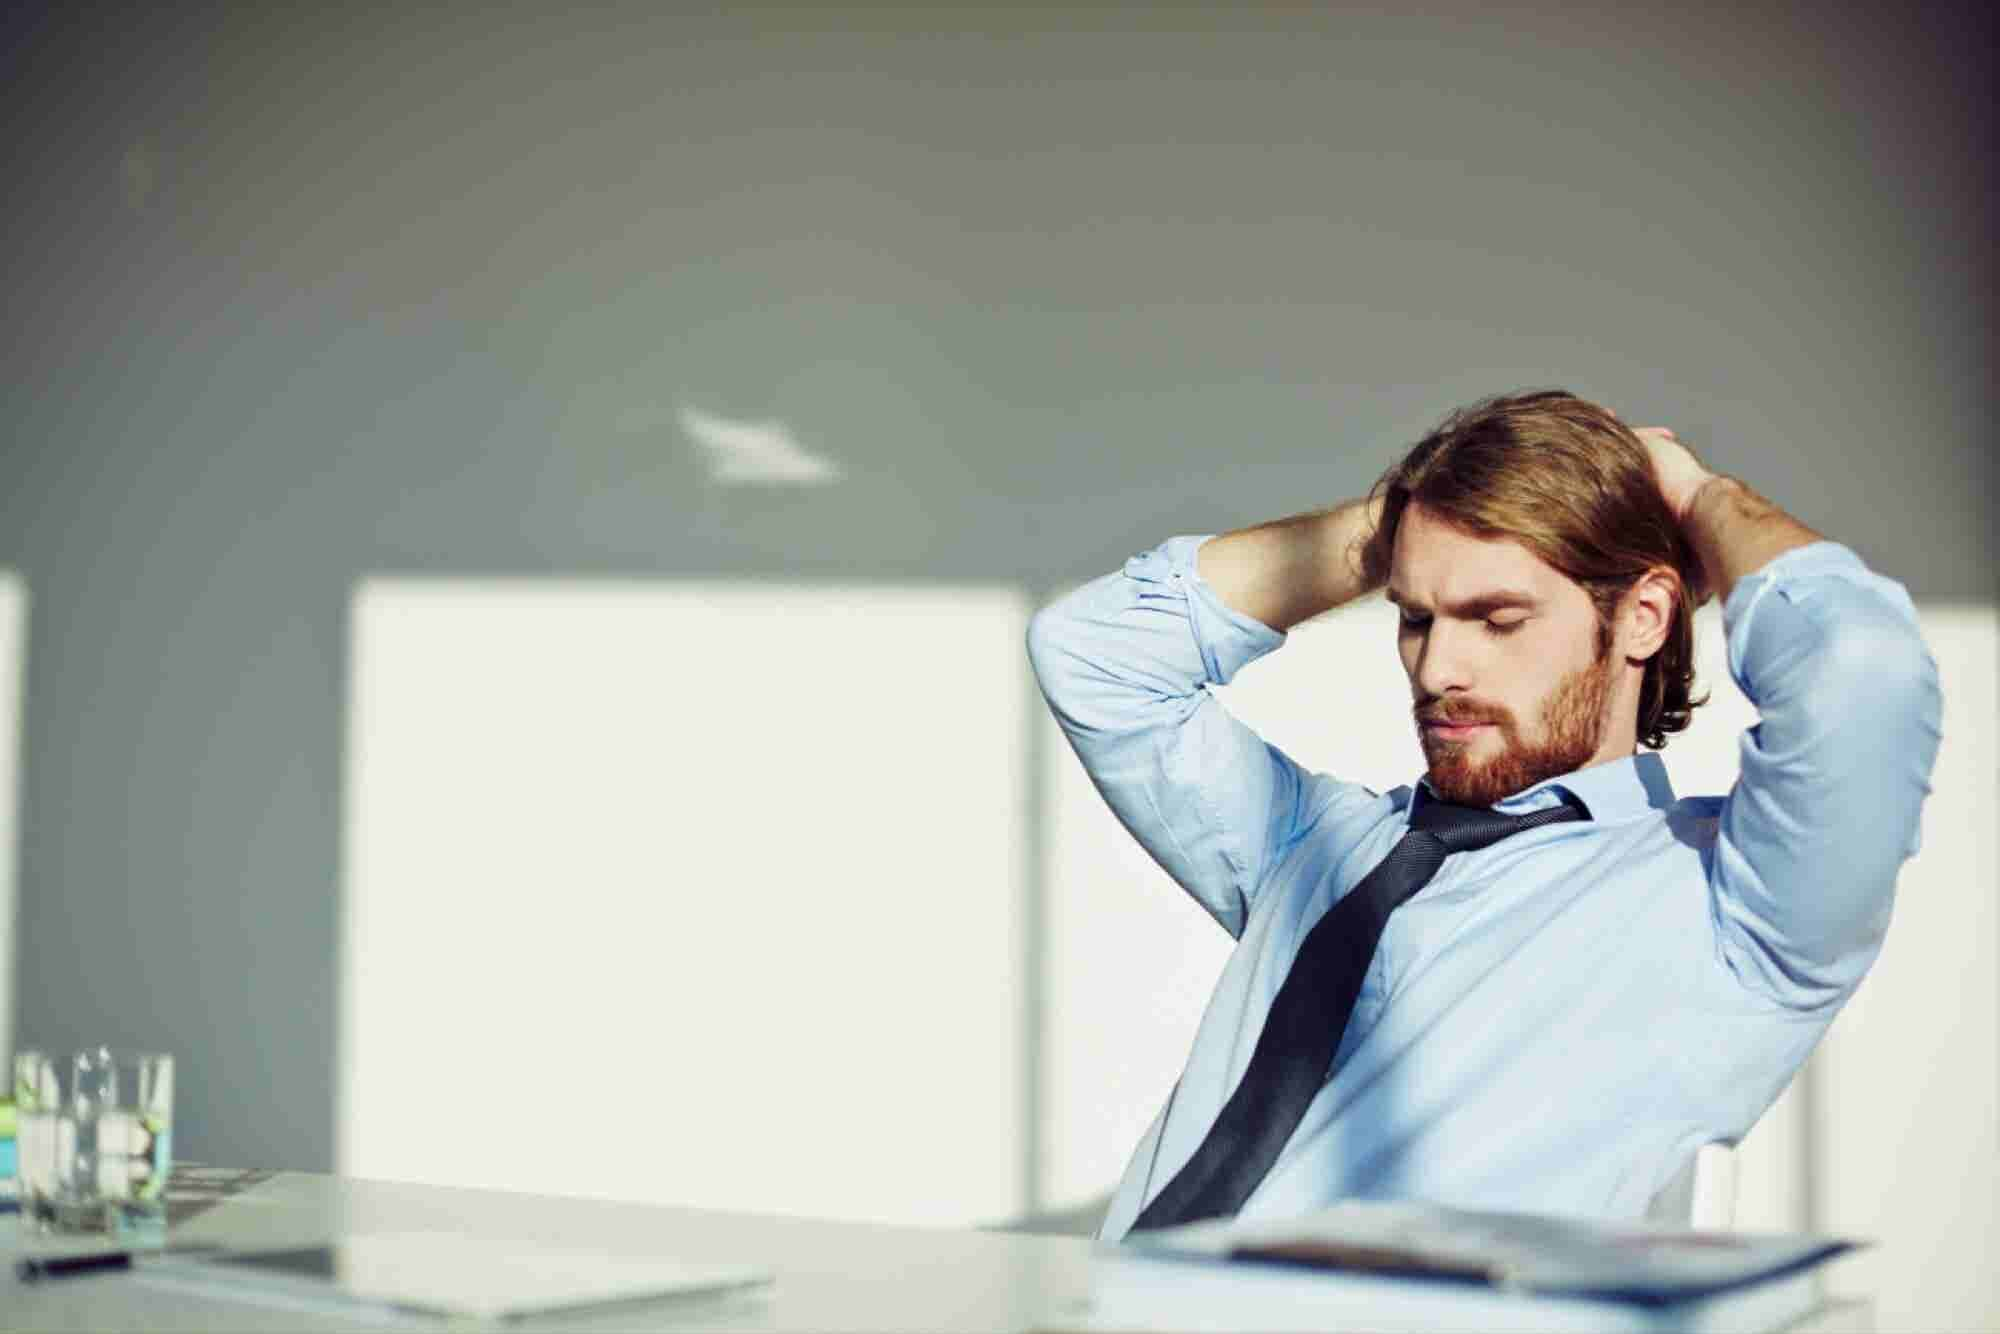 The 4 Most Common Workplace Worries and How to Overcome Them